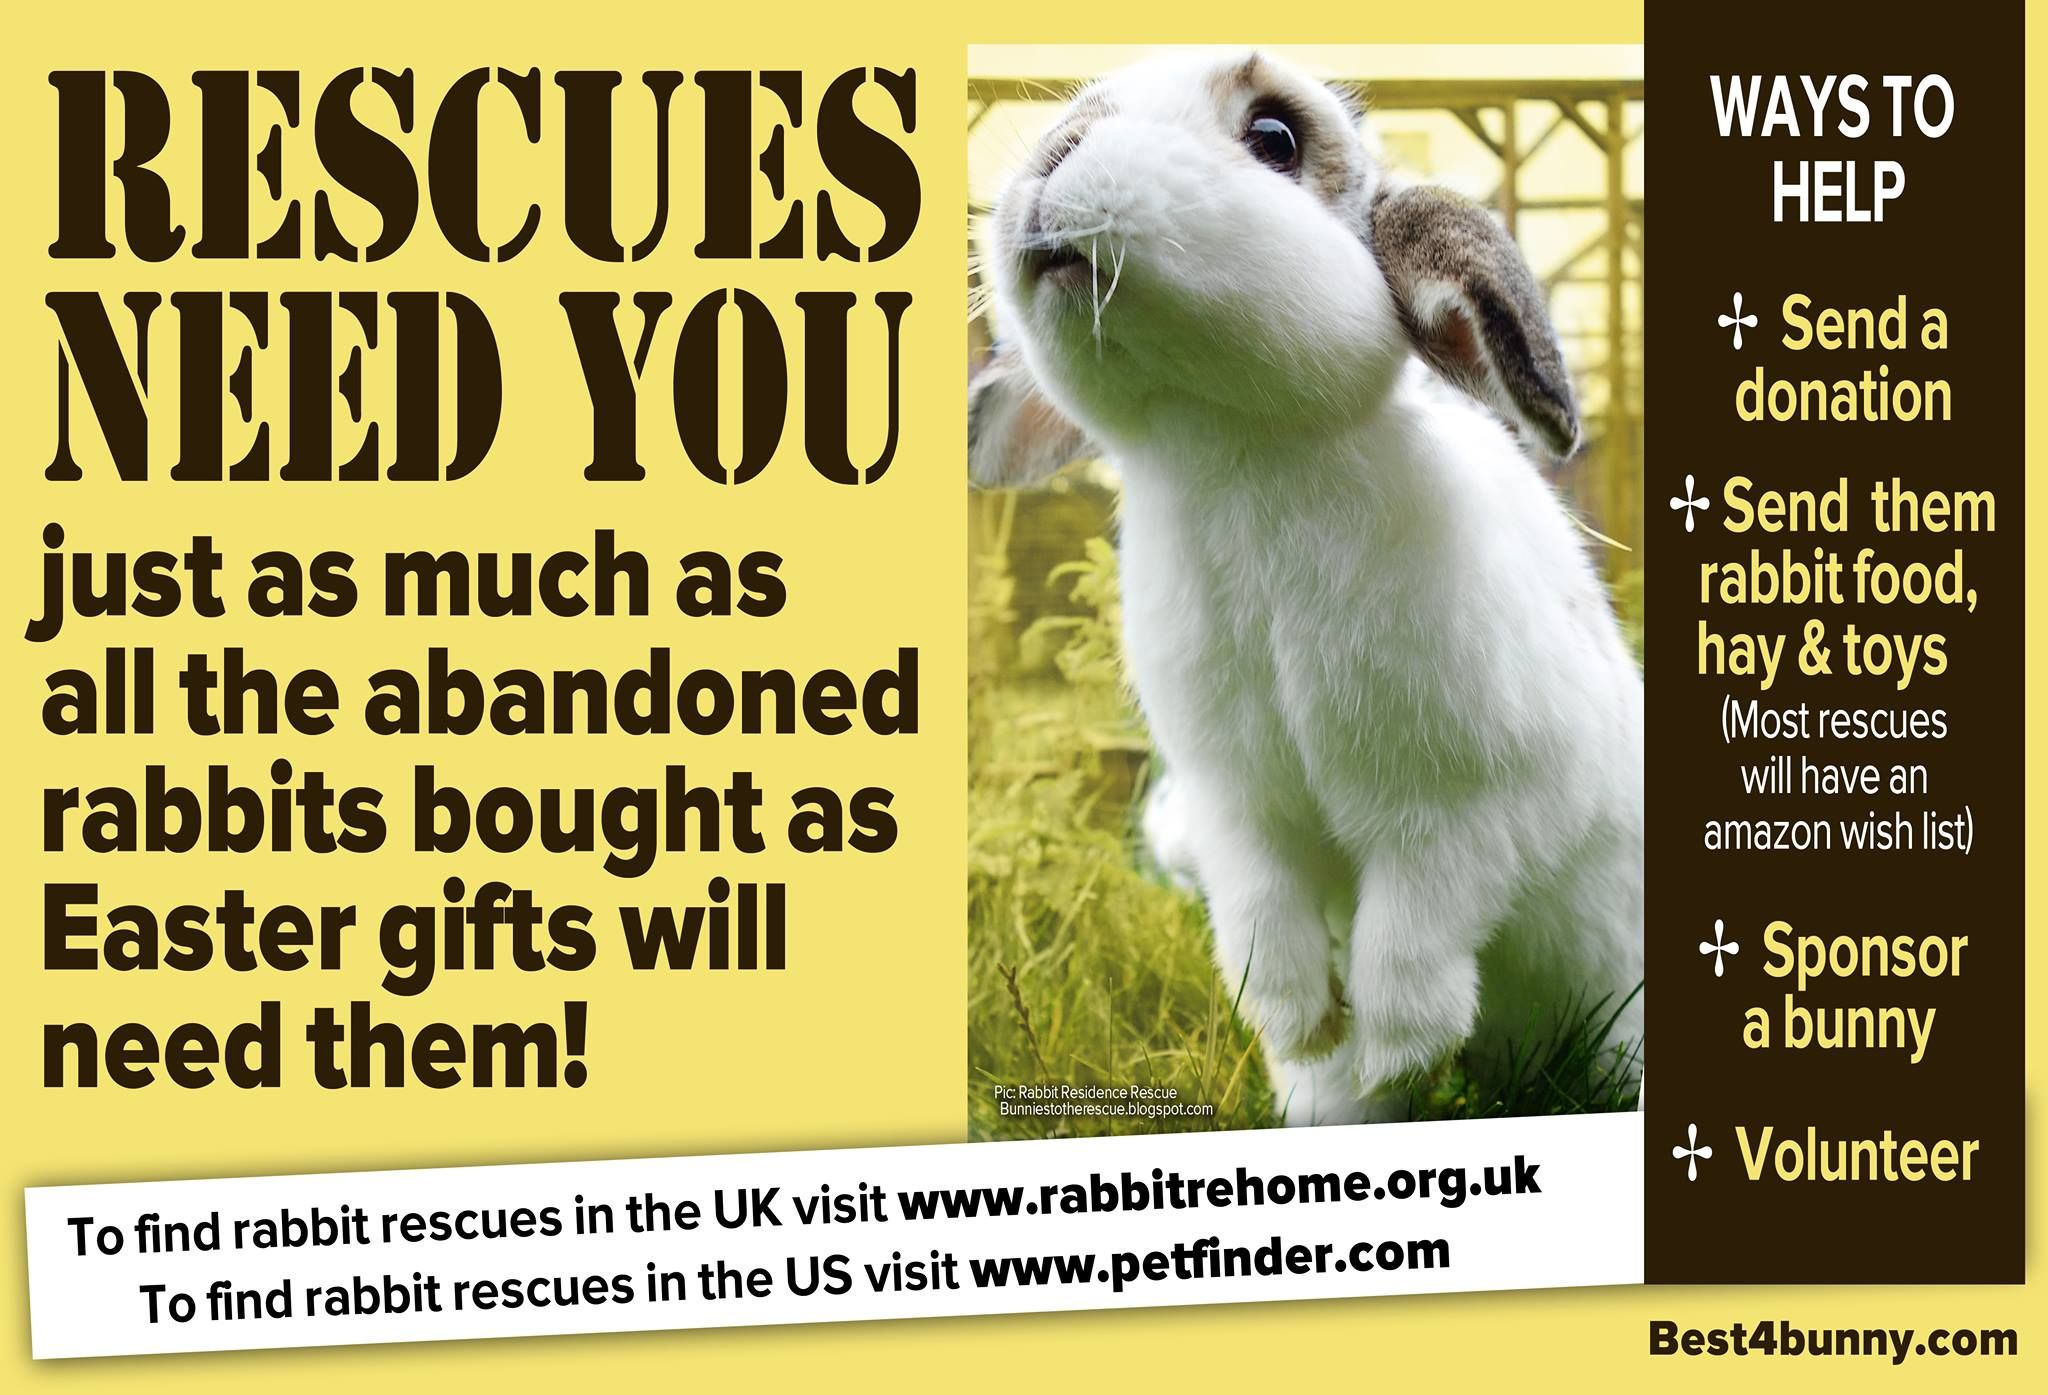 The rescues need you rescues everywhere will soon be inundated with rescues everywhere will soon be inundated with unwanted abandoned bunnies bought as easter gifts they will need all the help they can get negle Choice Image